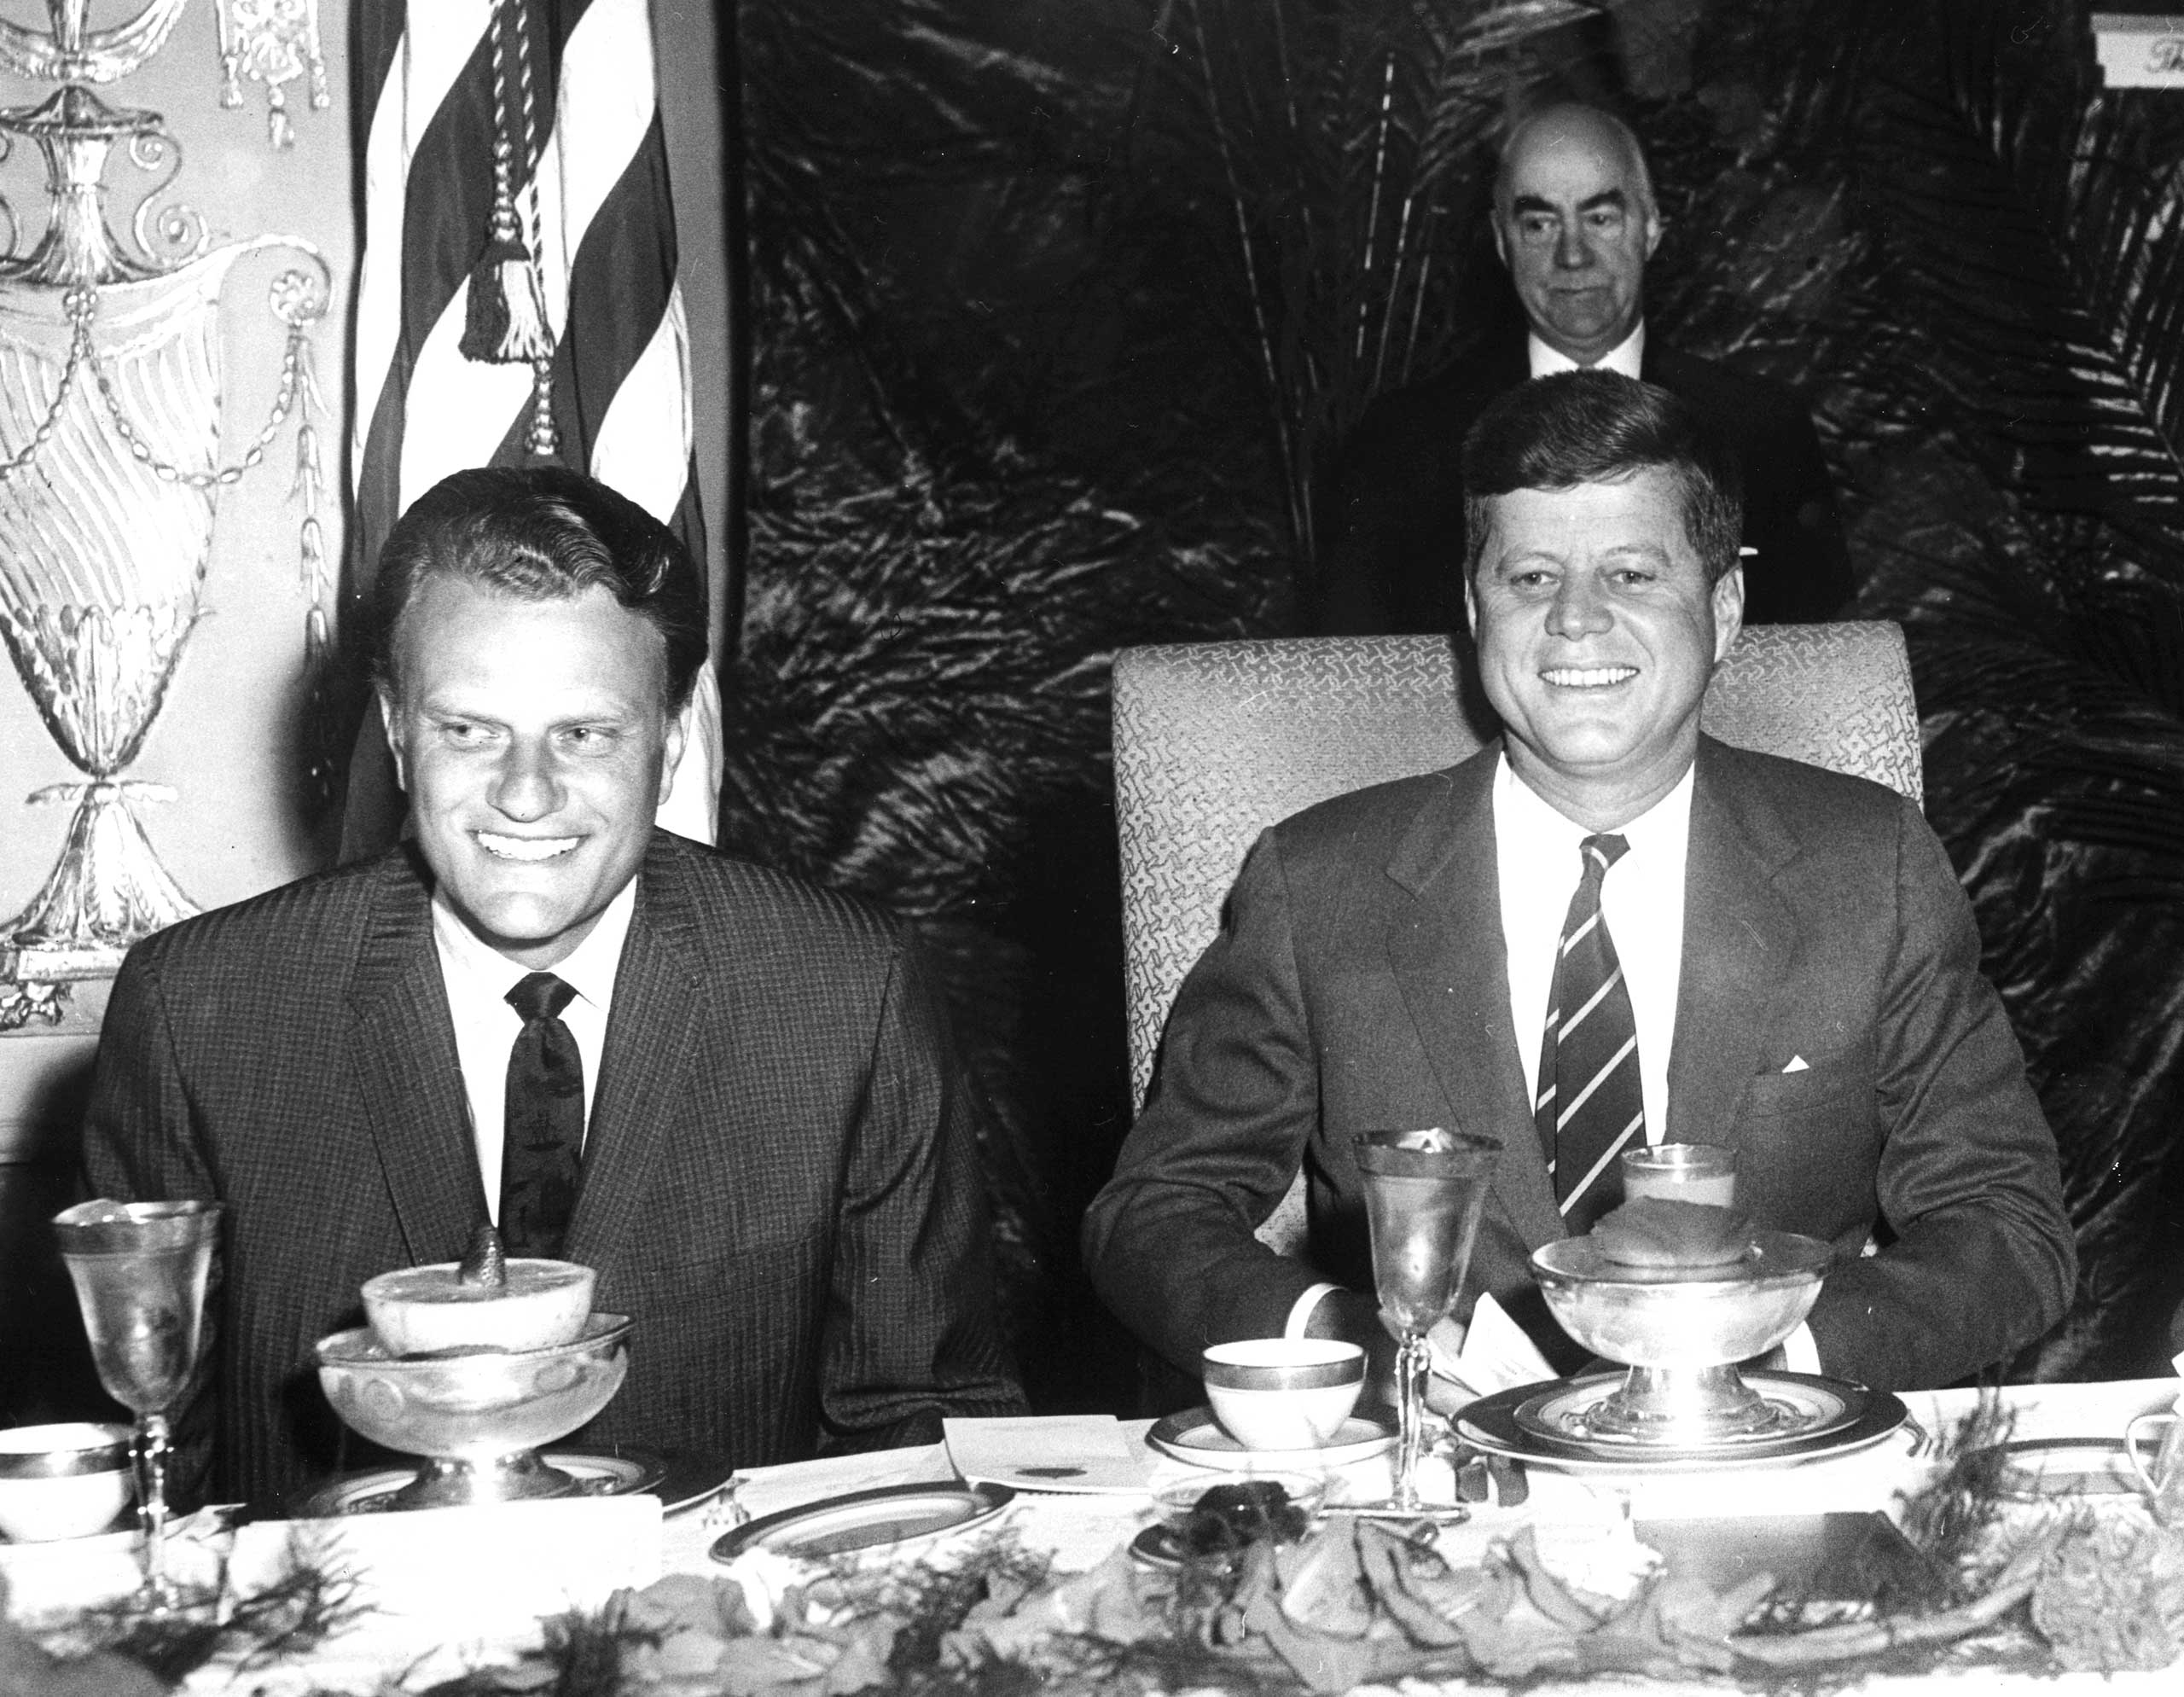 John F. Kennedy, the nation's first Catholic president, eats breakfast with Southern Baptist minister Billy Graham at the National Prayer Breakfast in 1961.